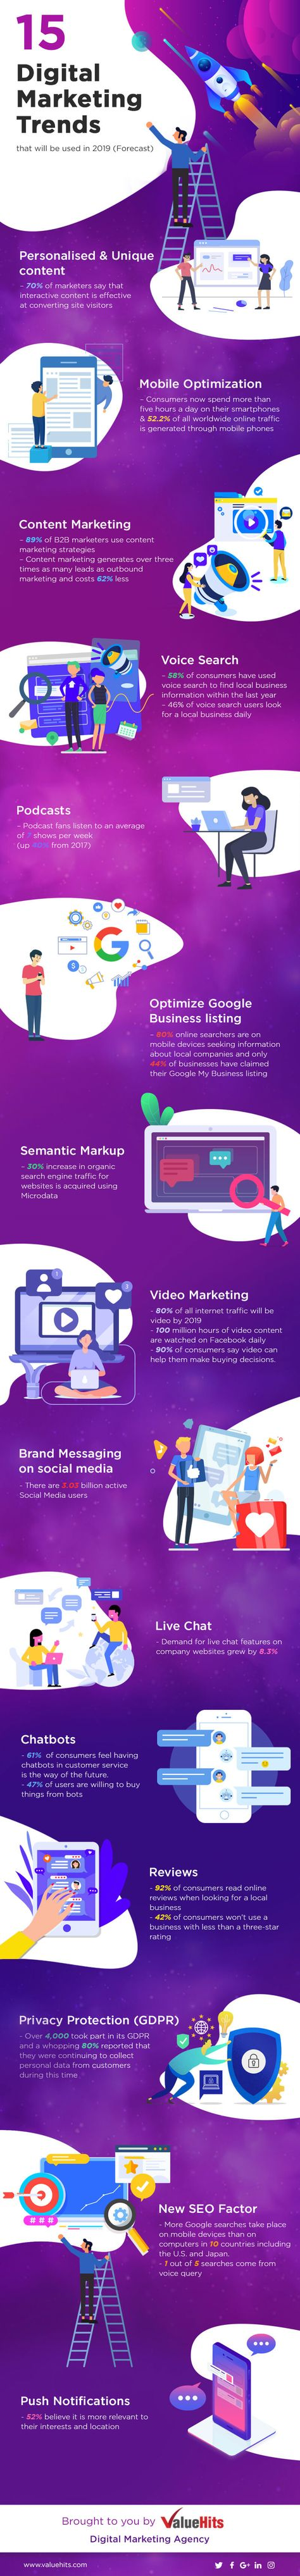 15 Digital Marketing Trends Helping Businesses Grow in 2019